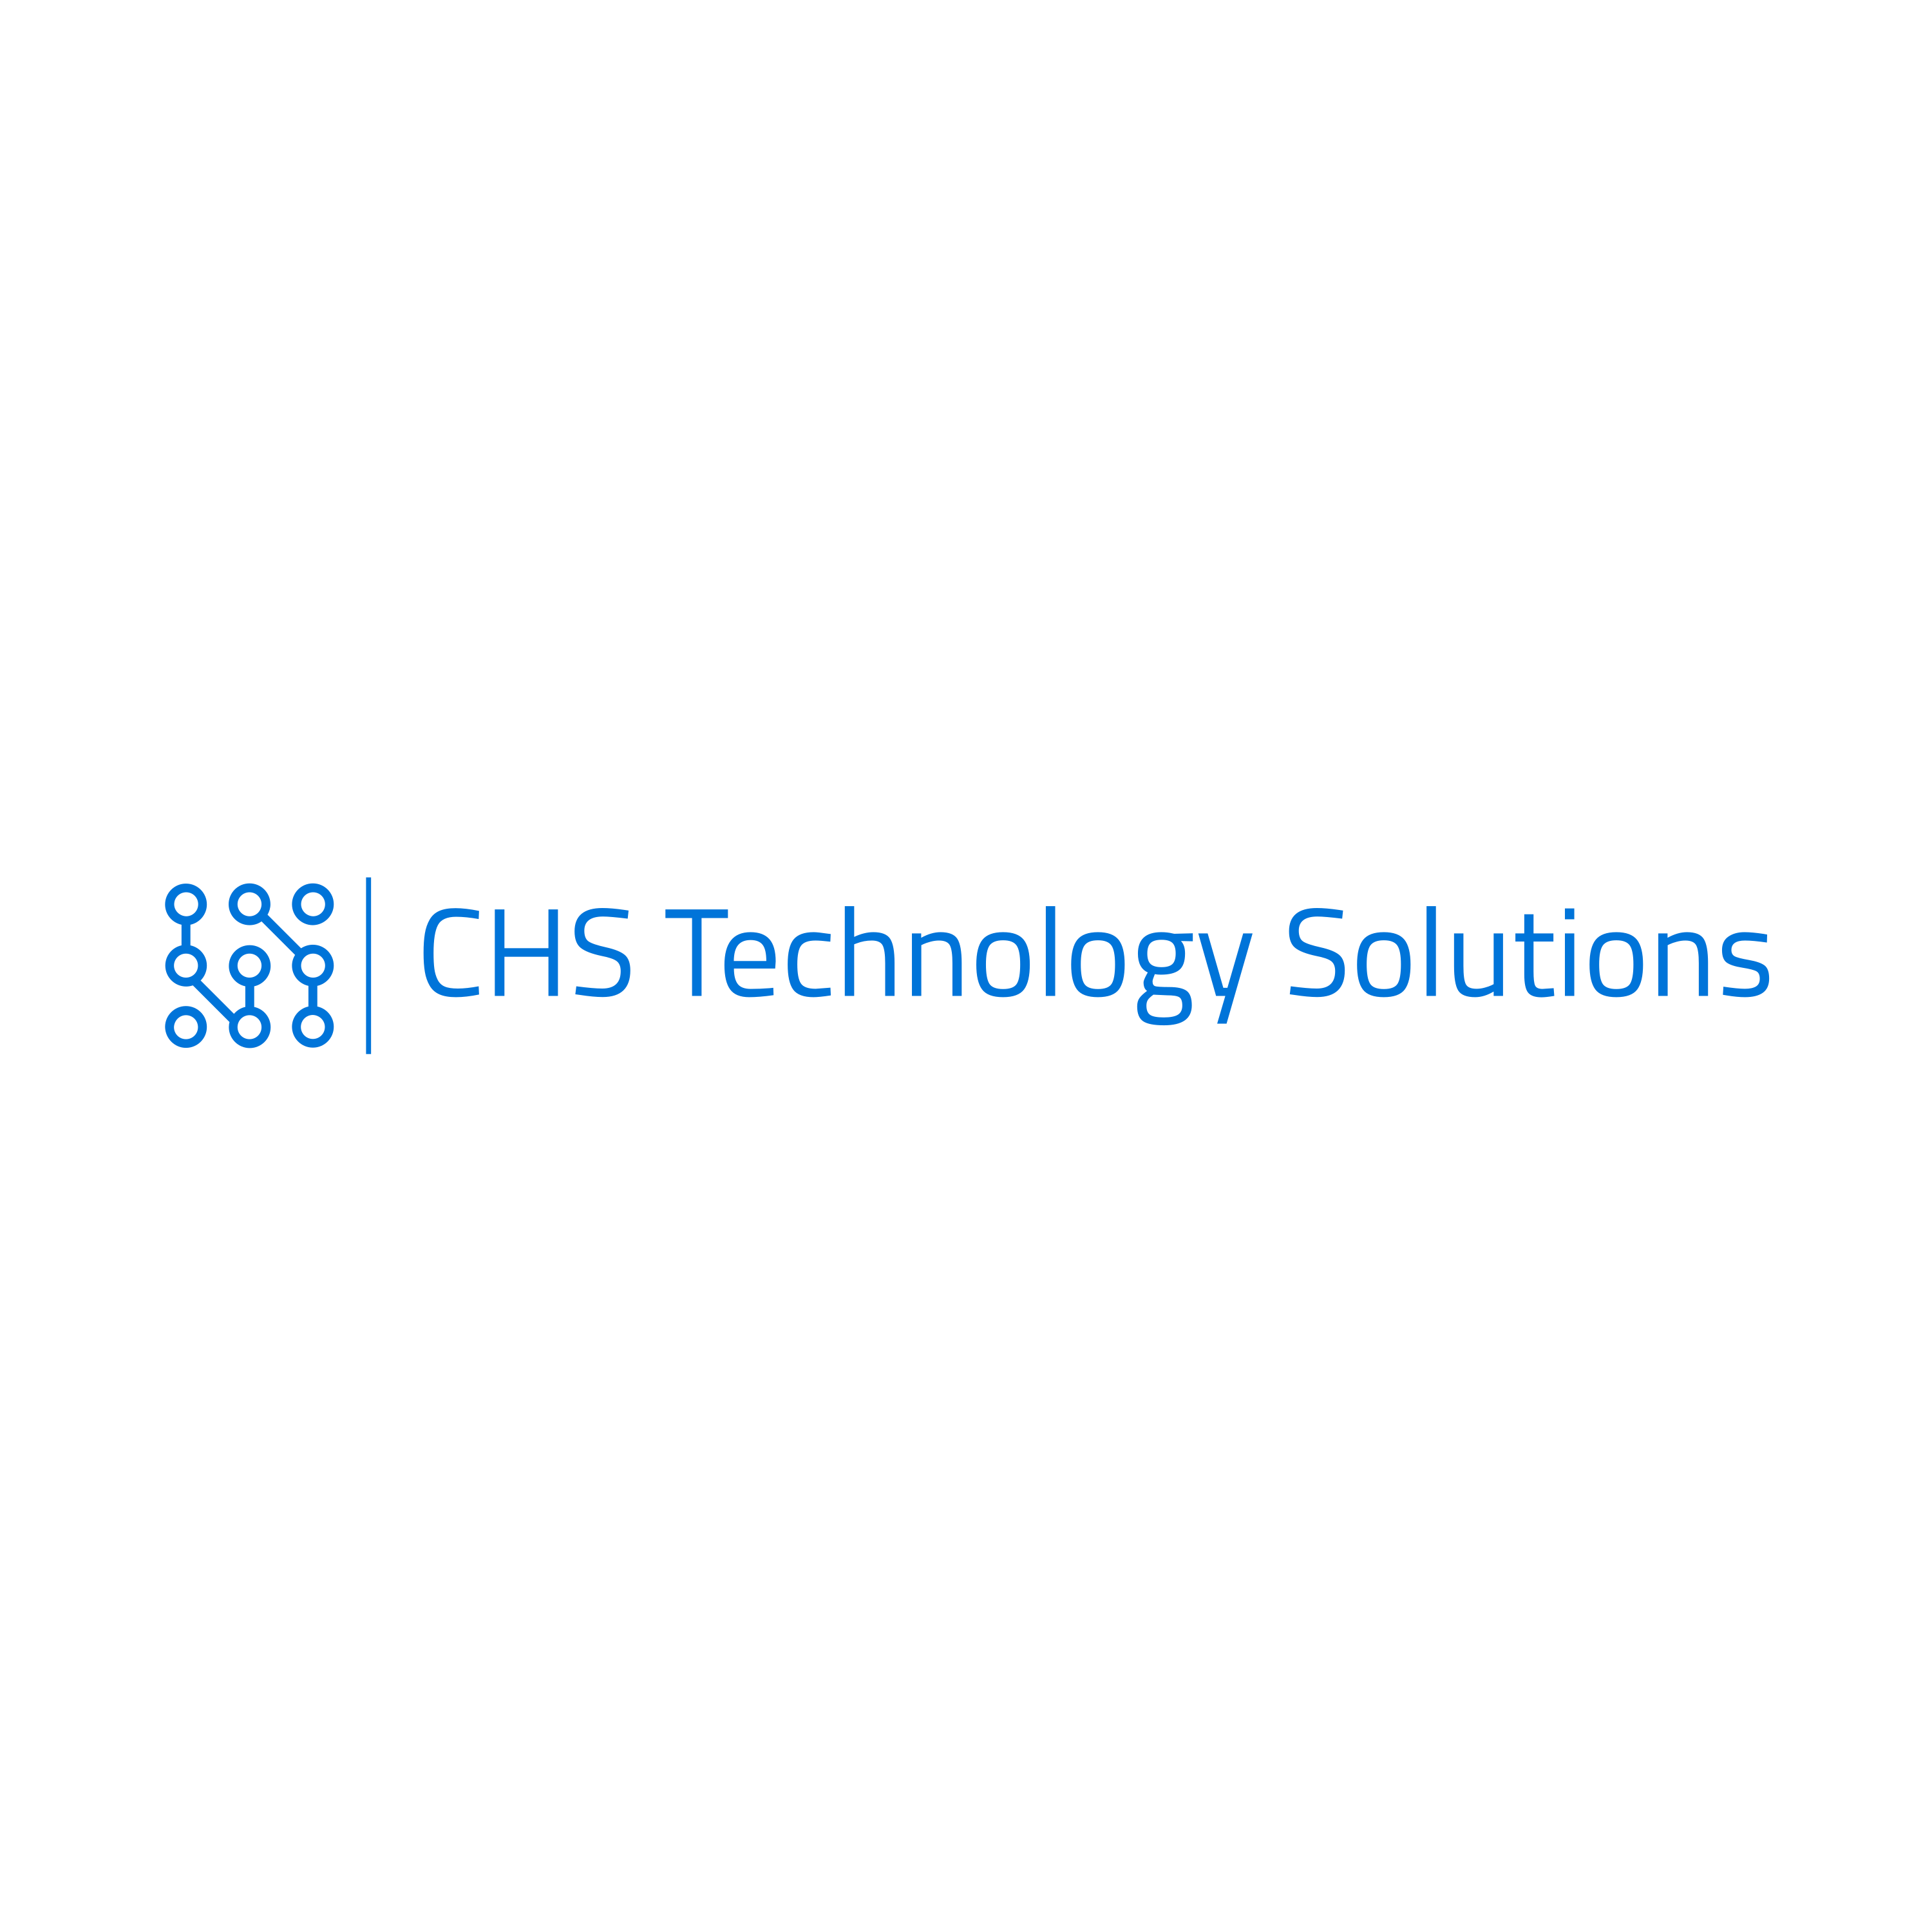 CHS Technology Solutions